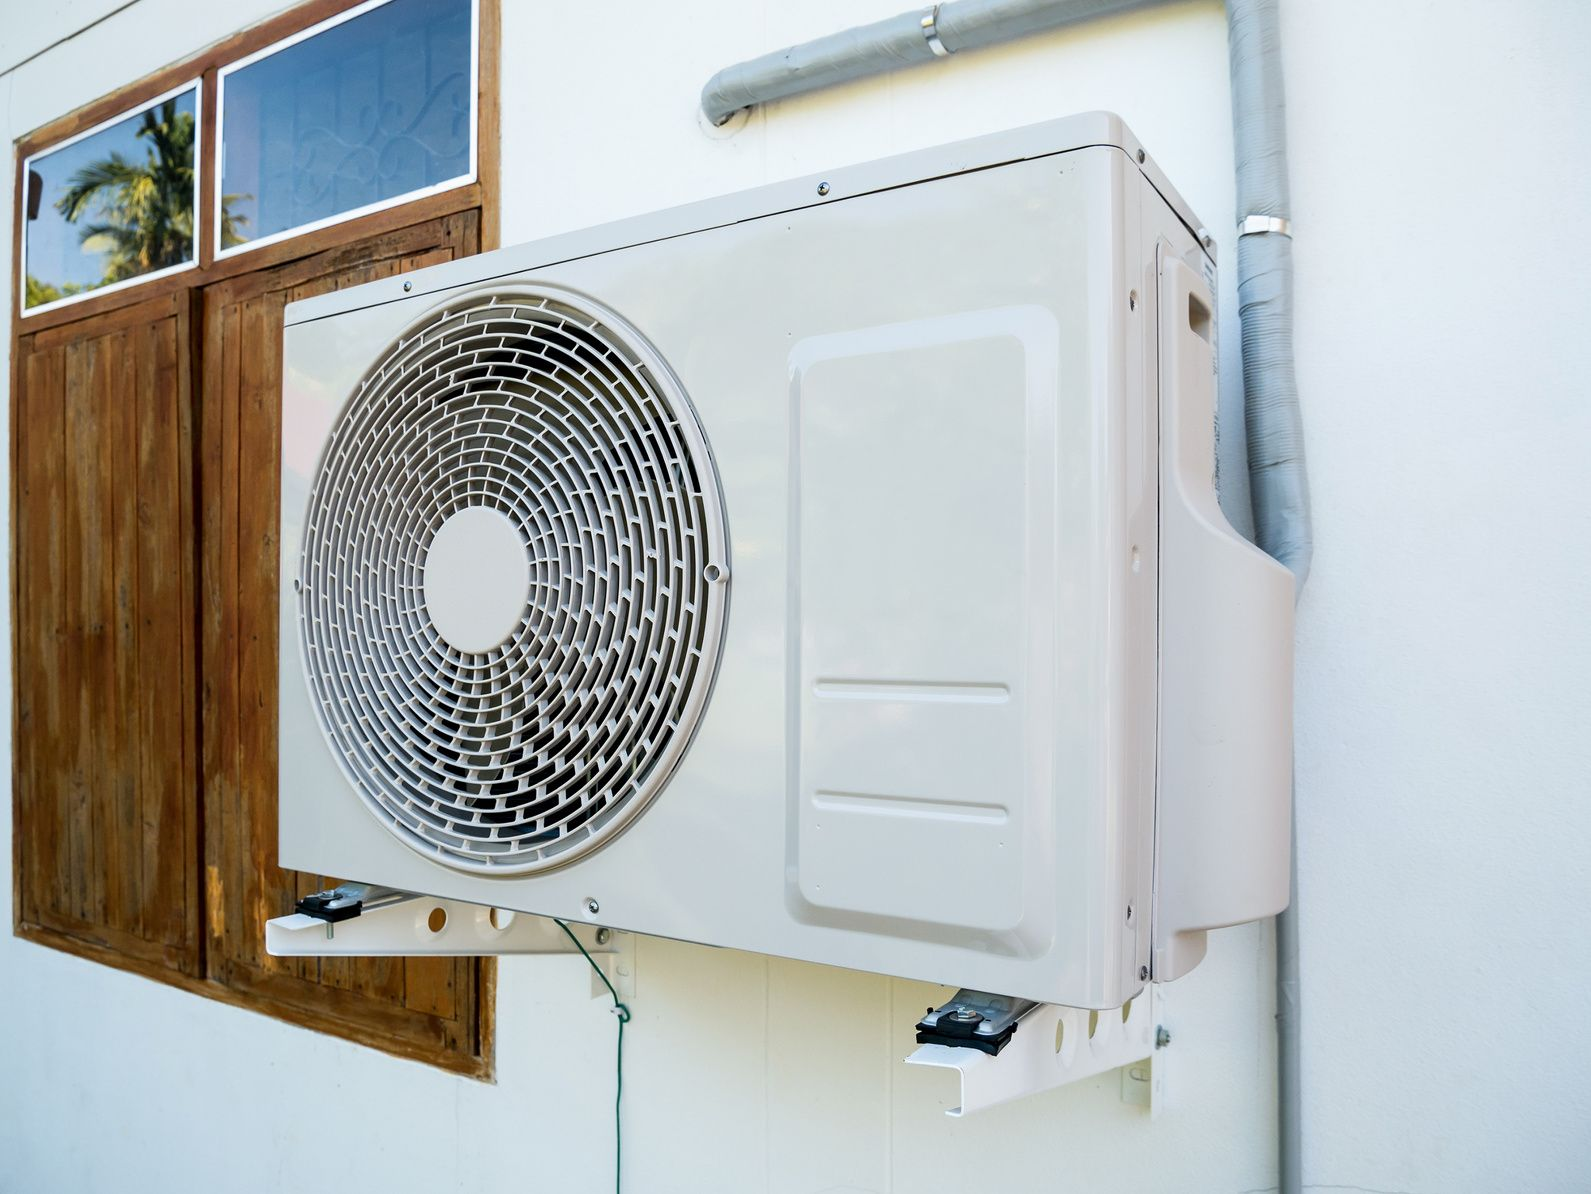 When to Replace AC vs Repair?